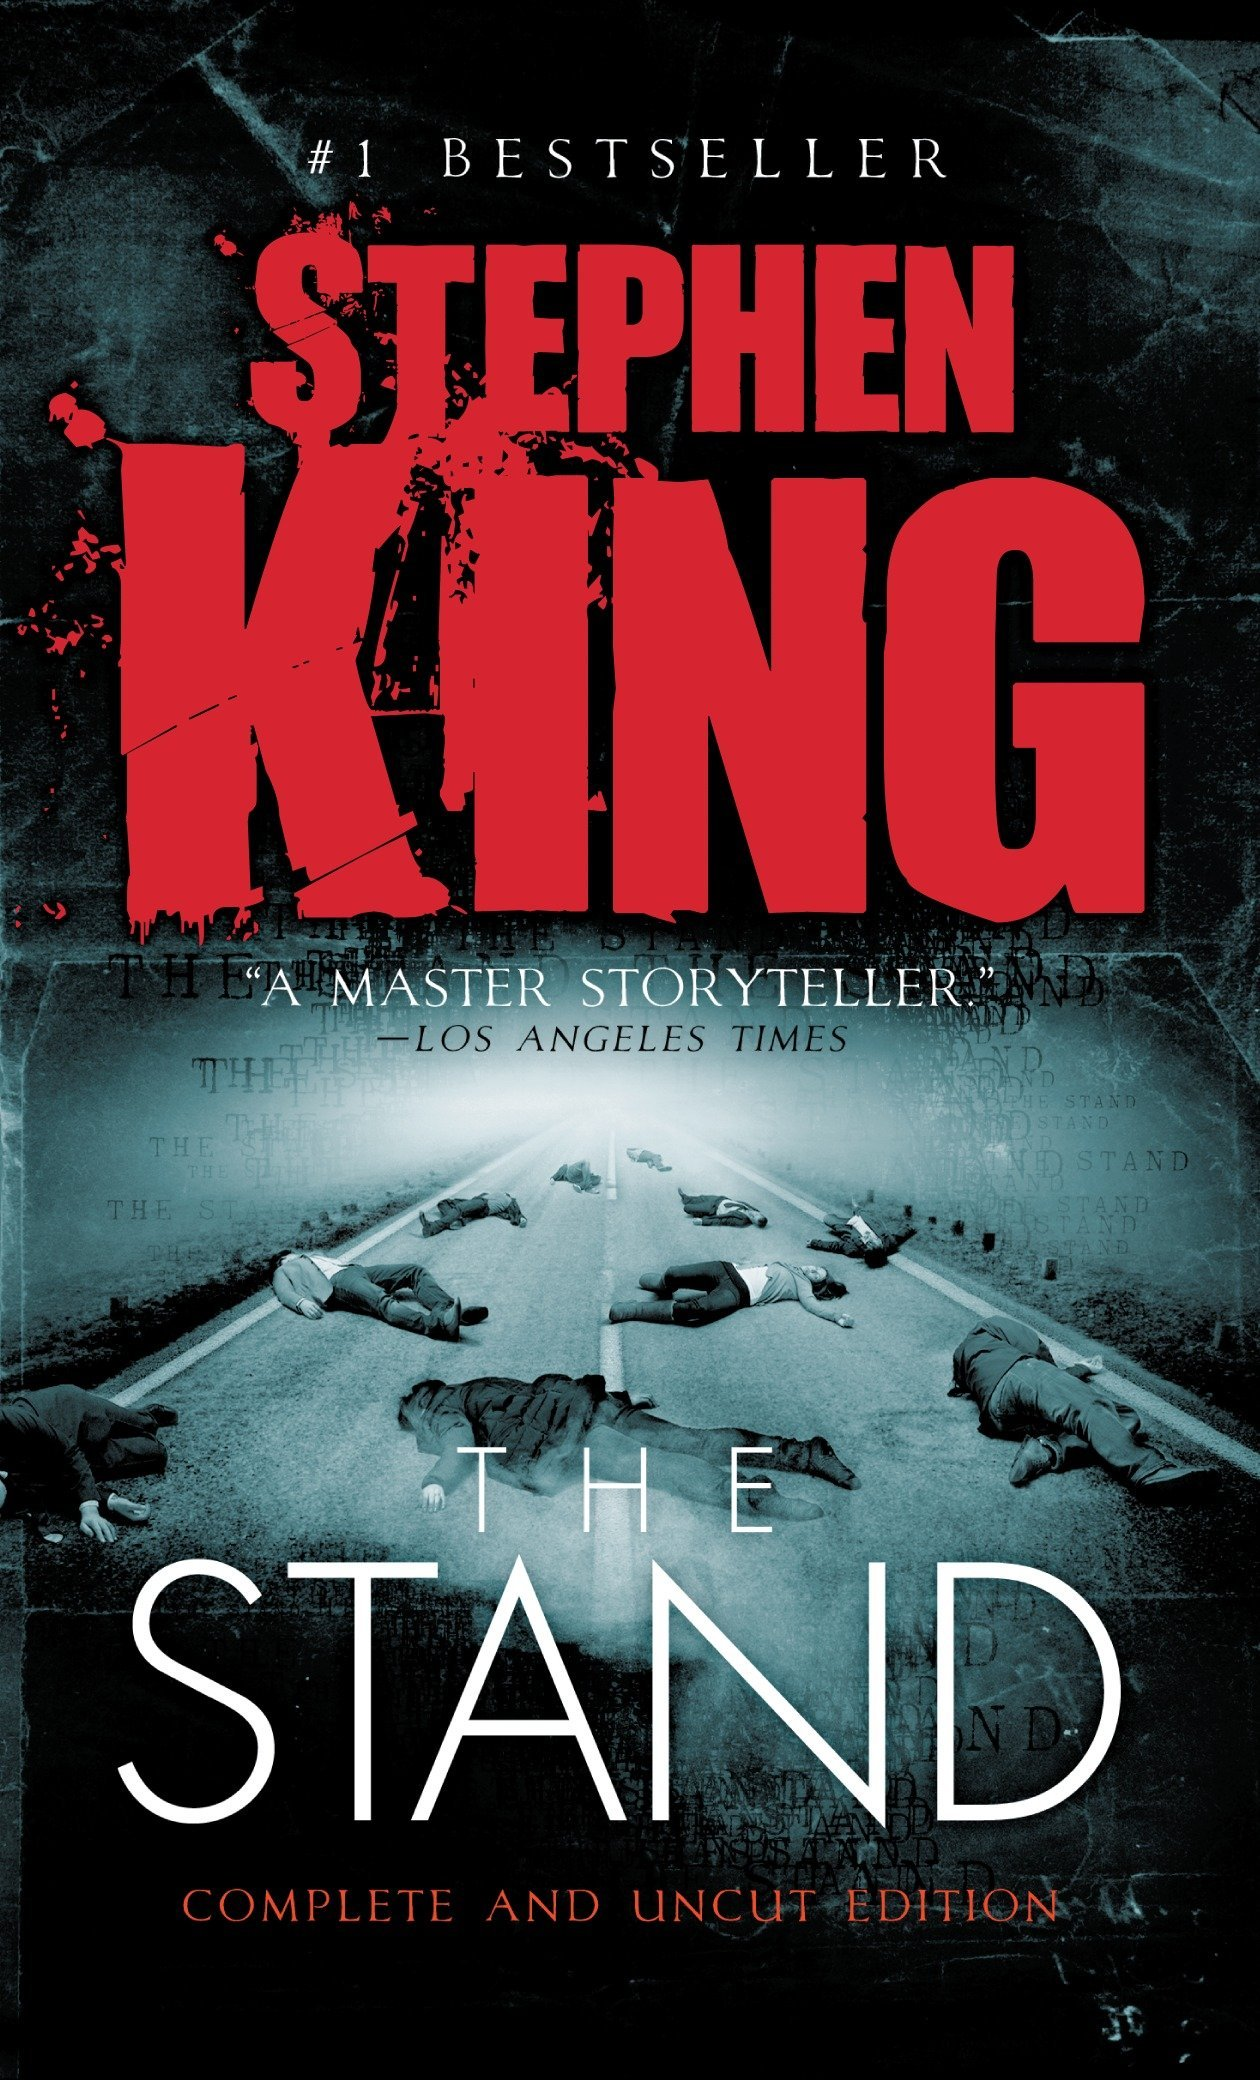 The Stand cover 2.jpg